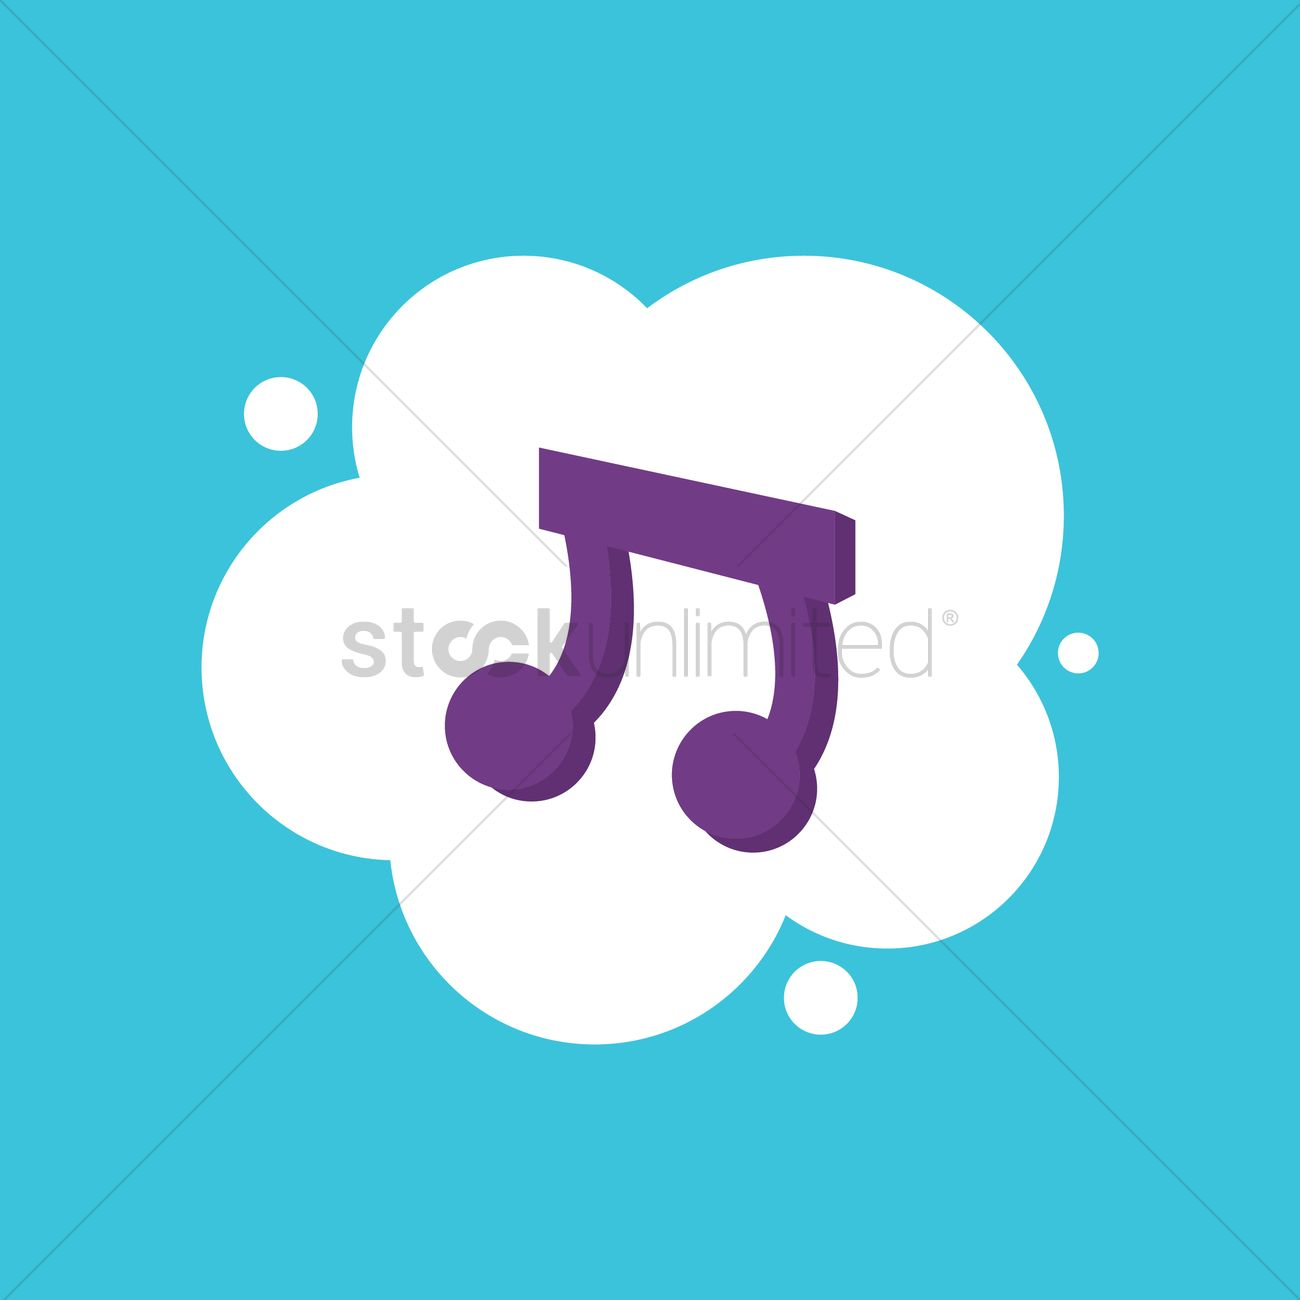 musical notes vector image 1413902 stockunlimited rh stockunlimited com Music Note Icon Vector Music Notes Vector Art Free